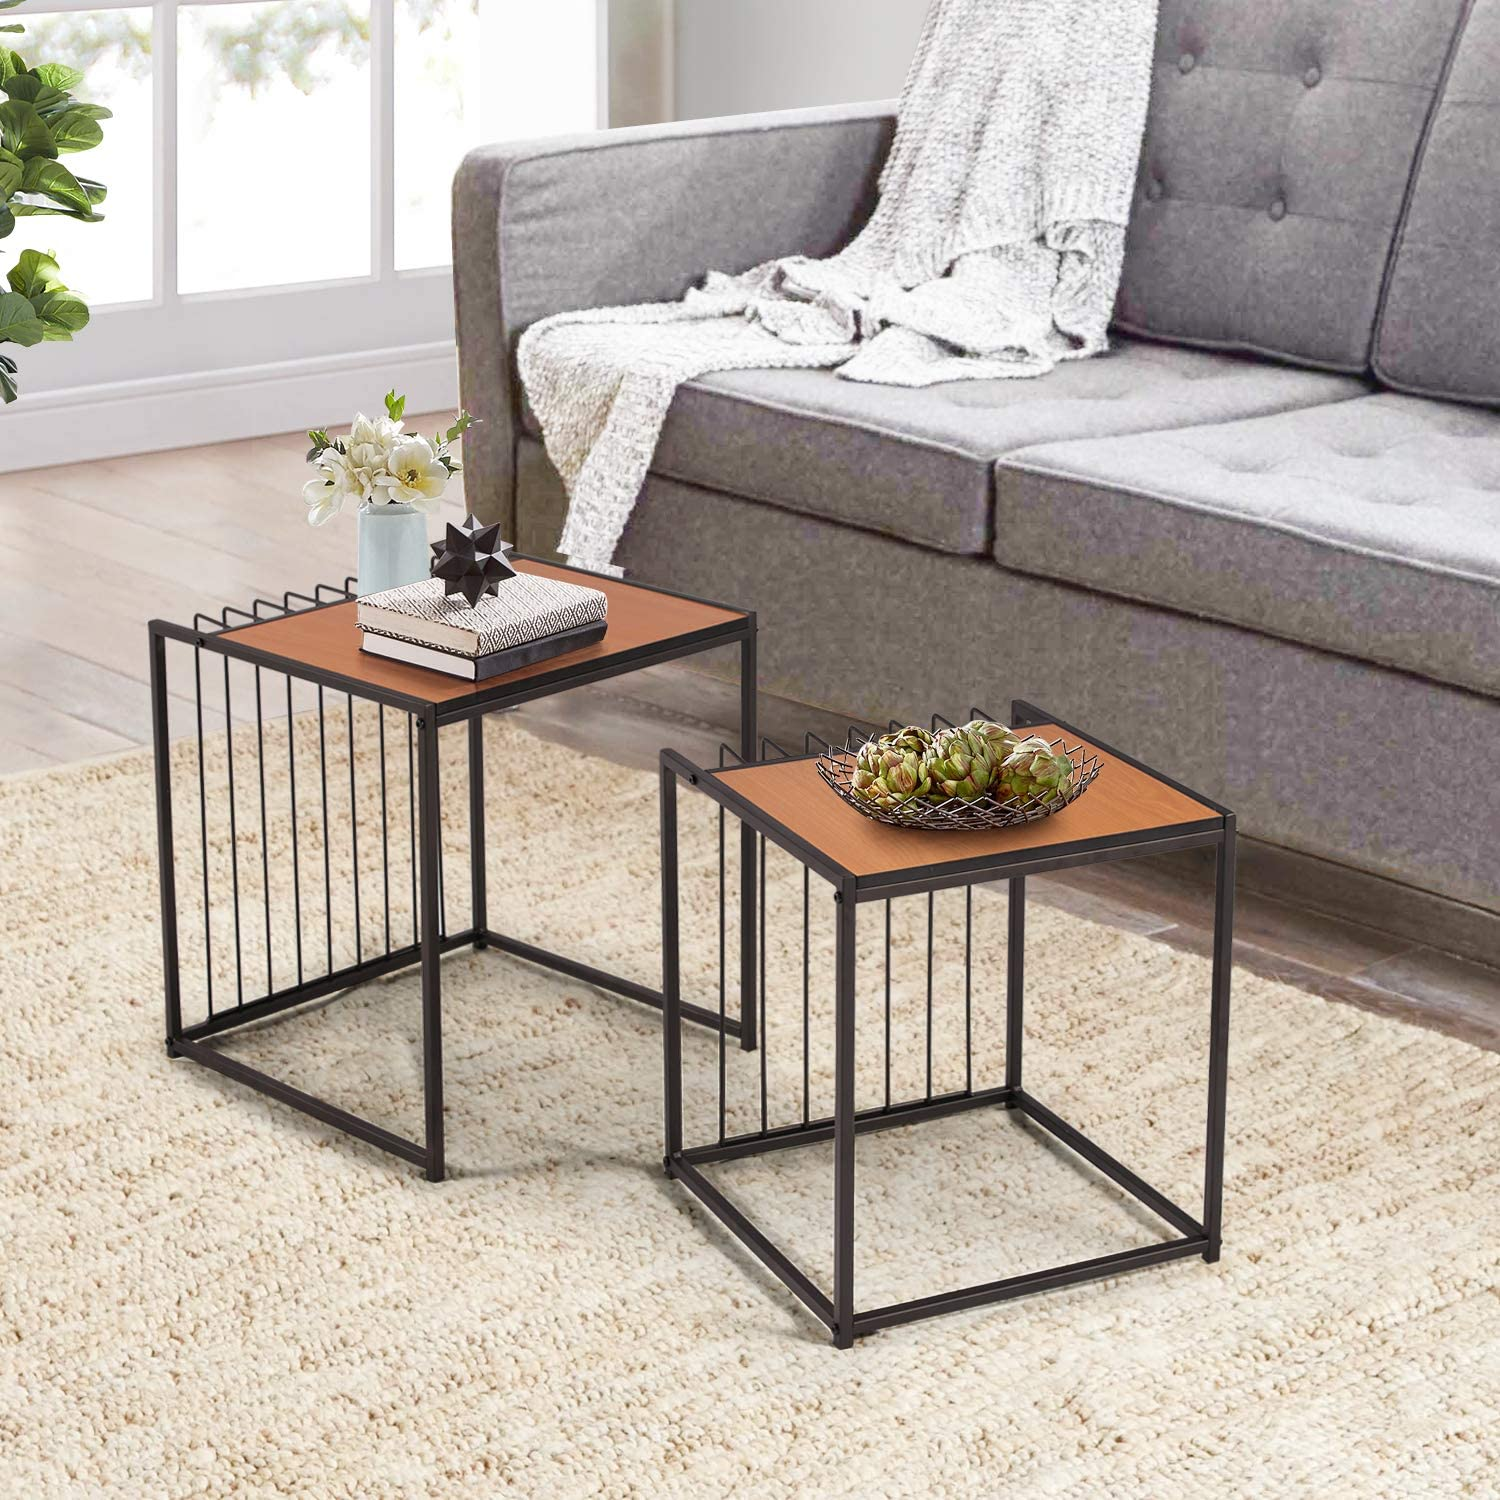 Set of 2 End Table for Living Room Balcony Home and Office VECELO Industrial Nesting Coffee Stacking Side Light Cheery